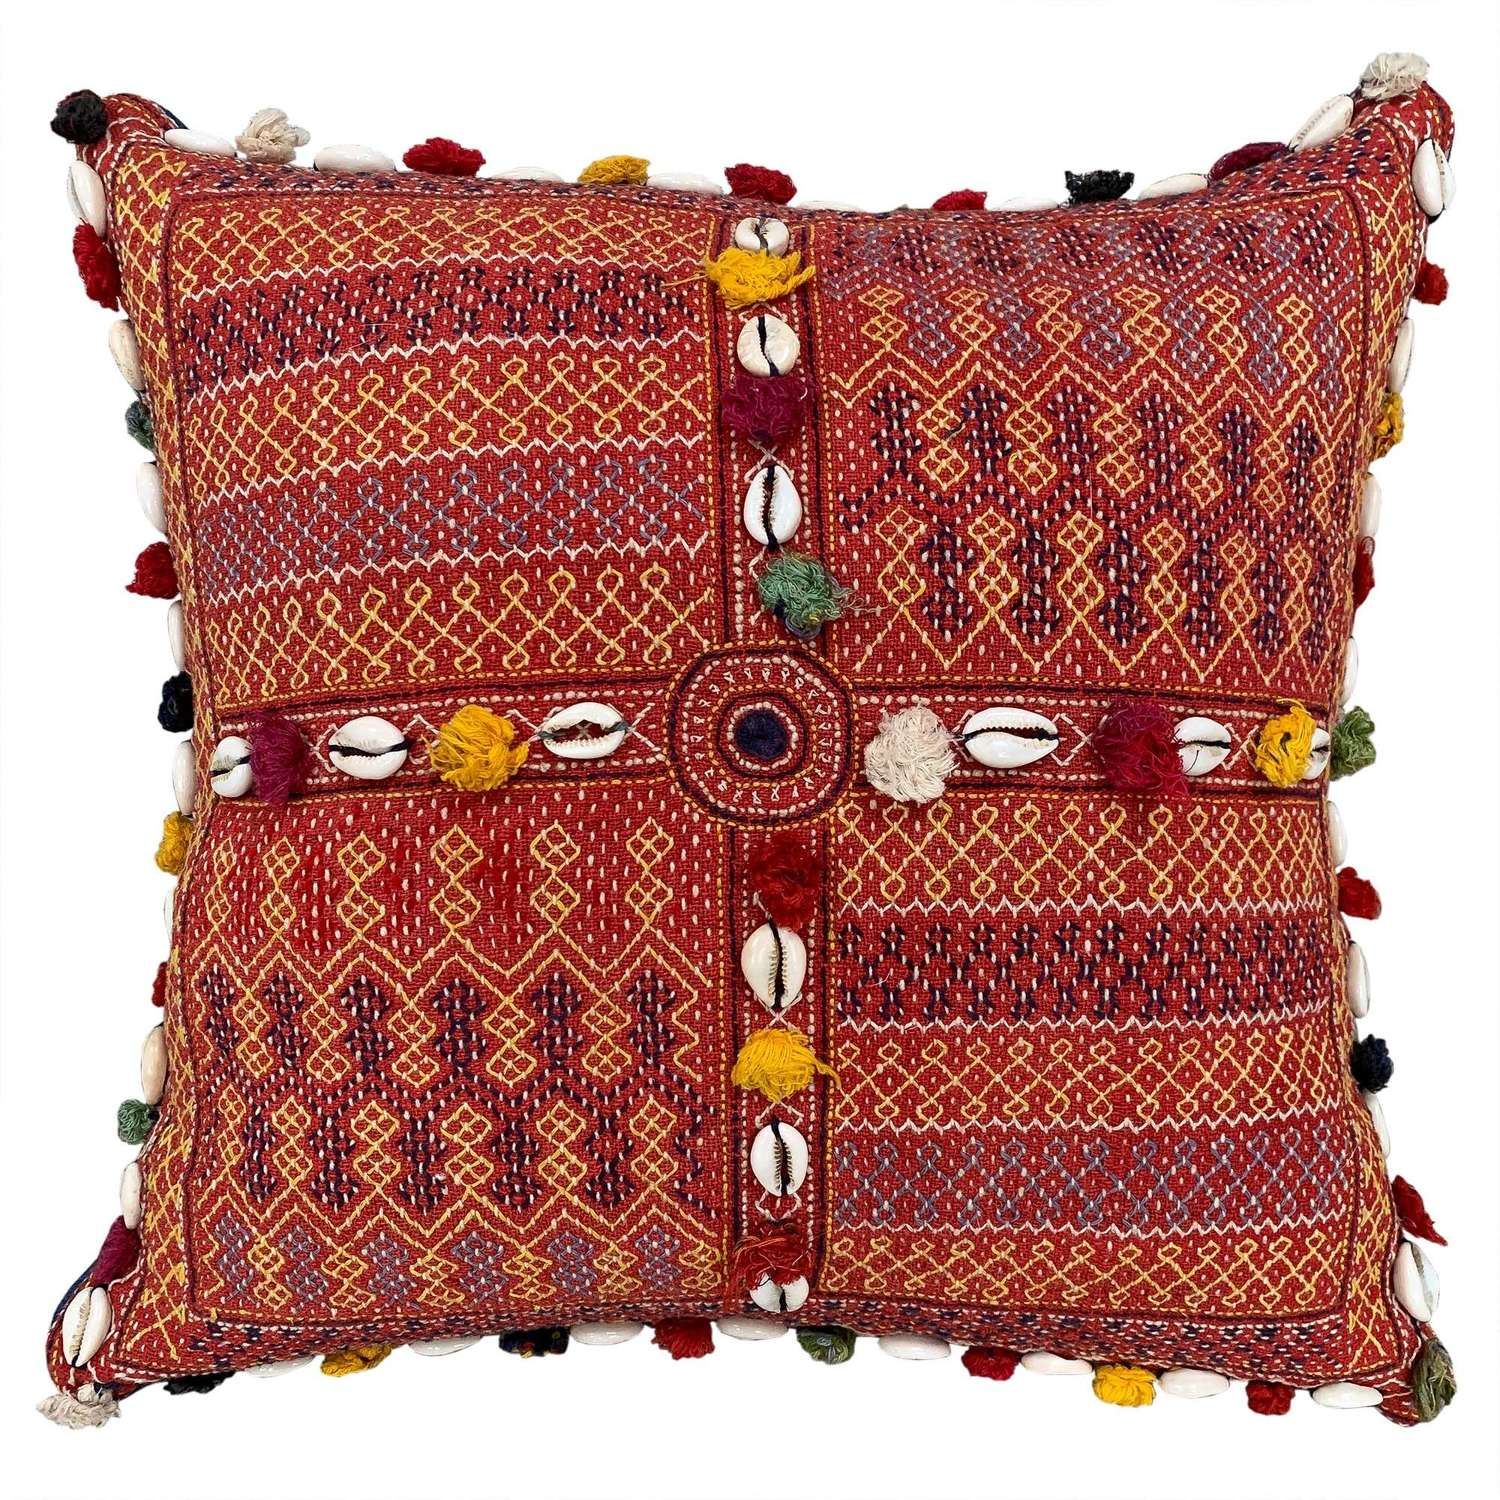 Banjara kalchi cushion with cowries and tassels